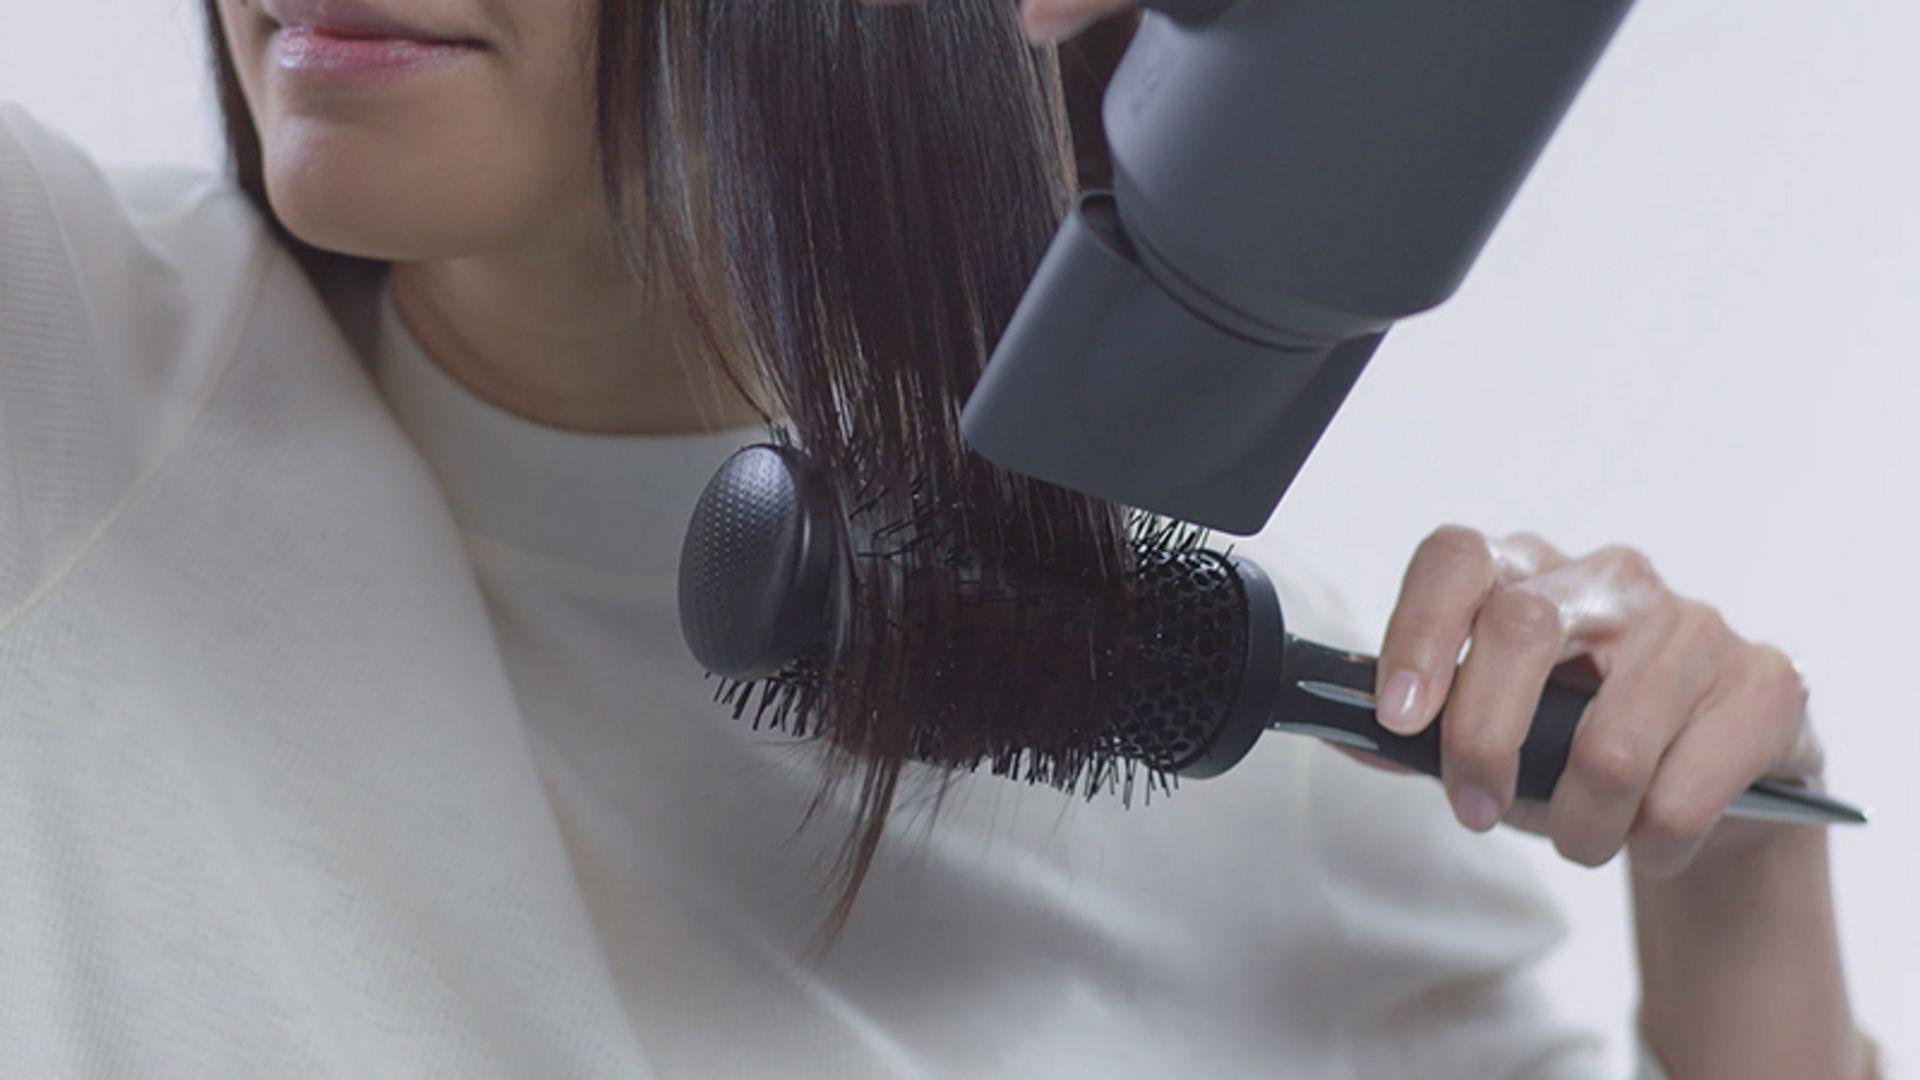 Lady using Dyson Supersonic smoothing nozzle attachment